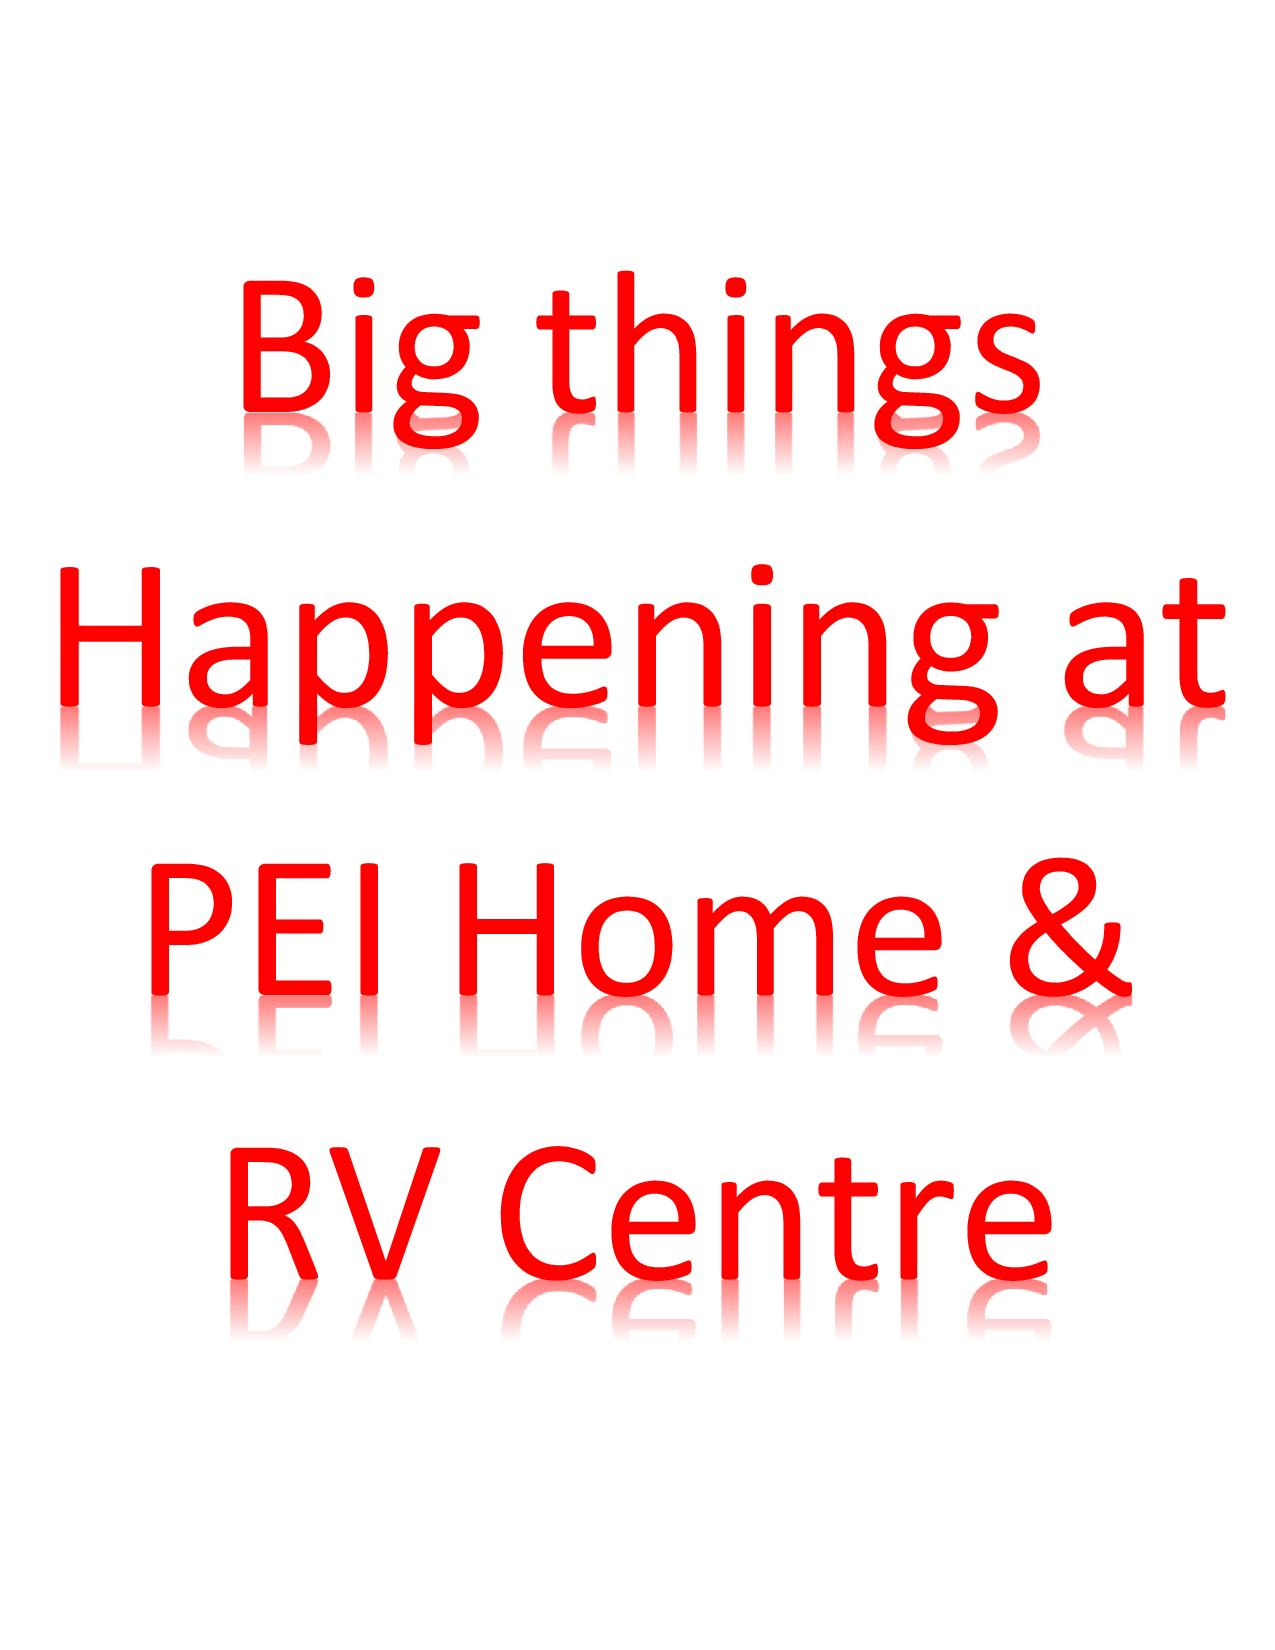 Big Things Happen at PEI Home & RV Centre